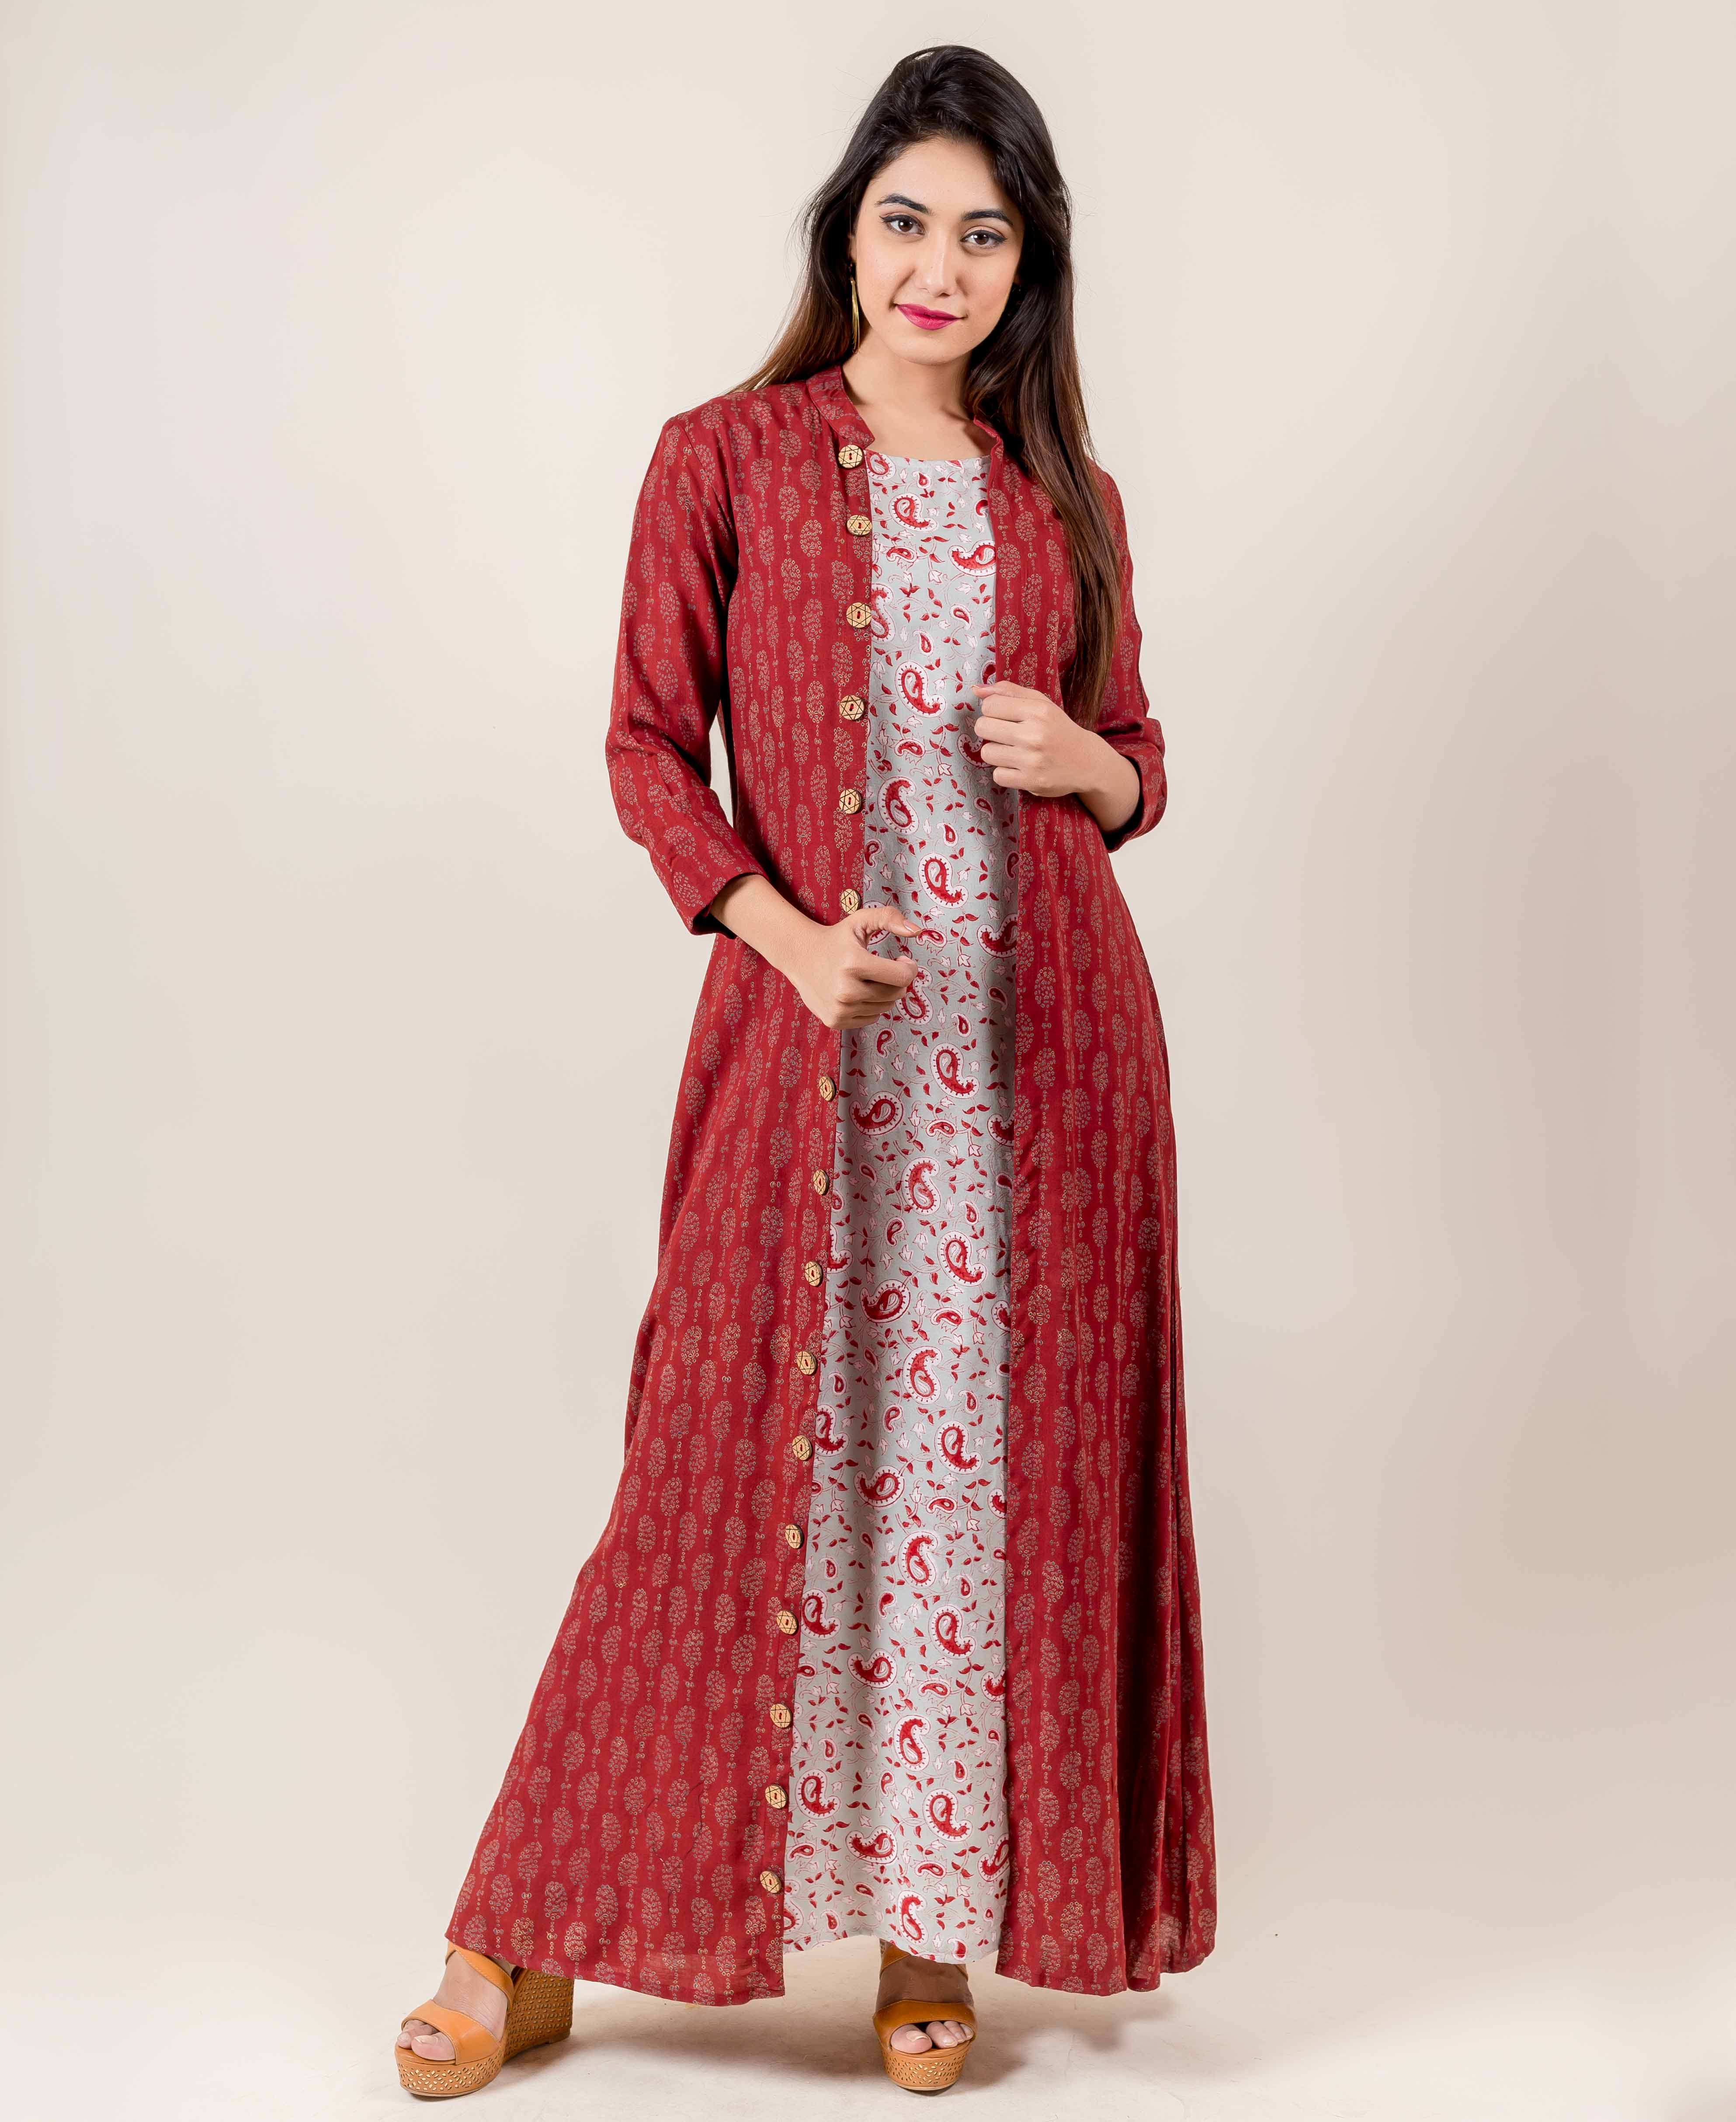 Western dresses in india to buy online